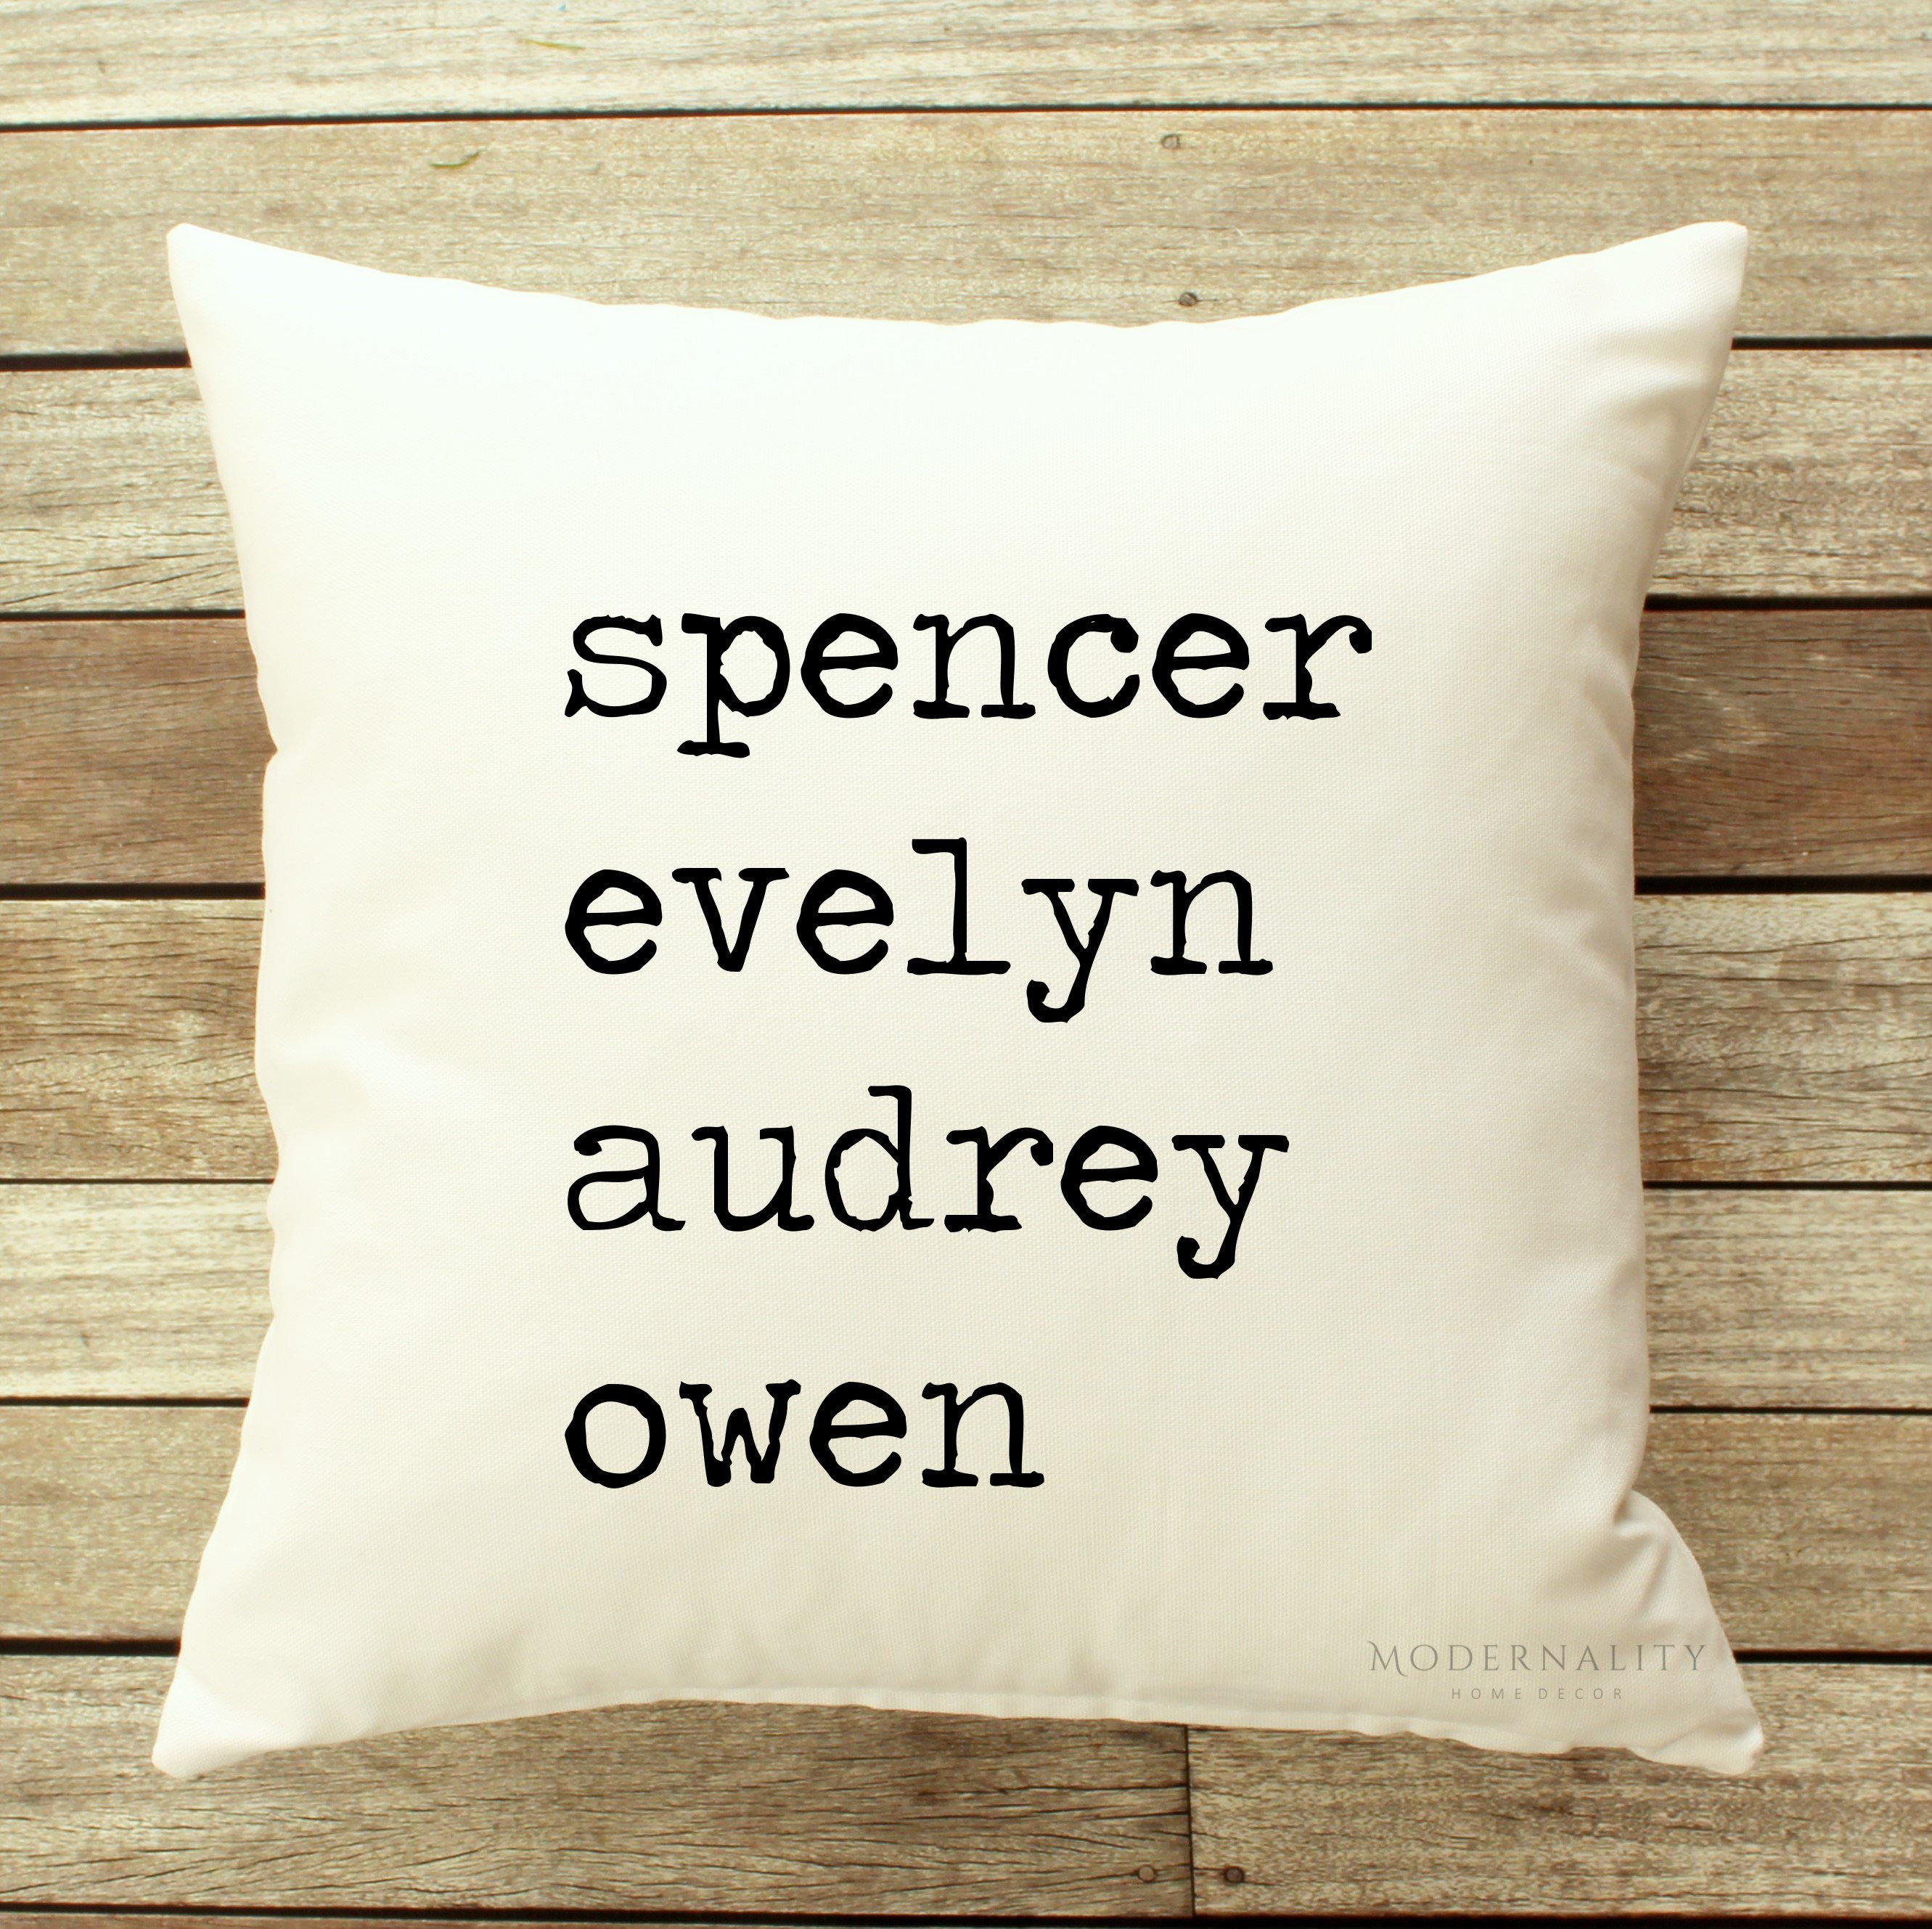 Custom Family Name Pillow ModernalityHomeDecor